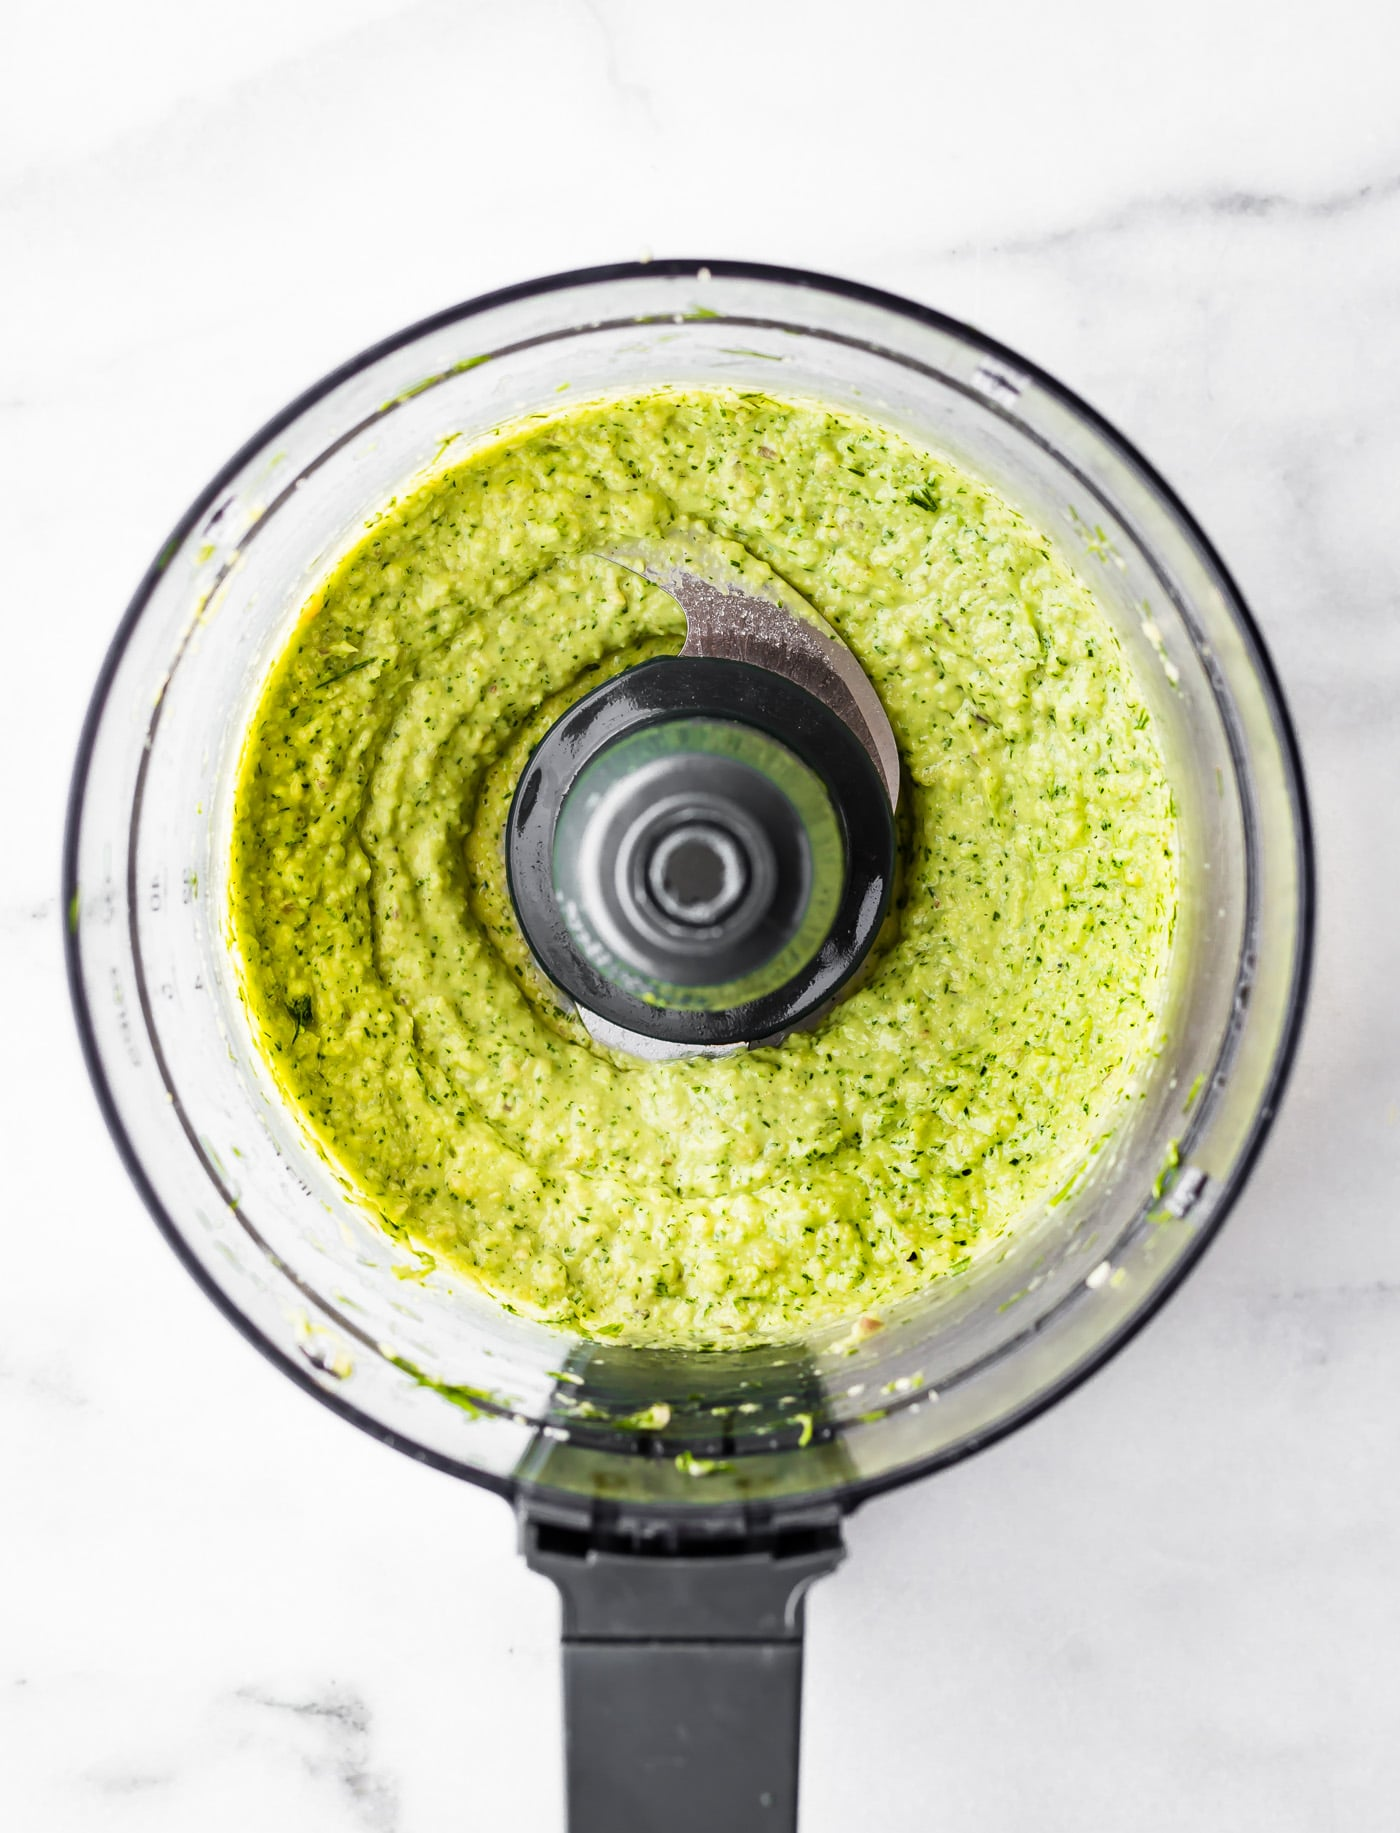 dill pesto sauce in the bowl of a food processor